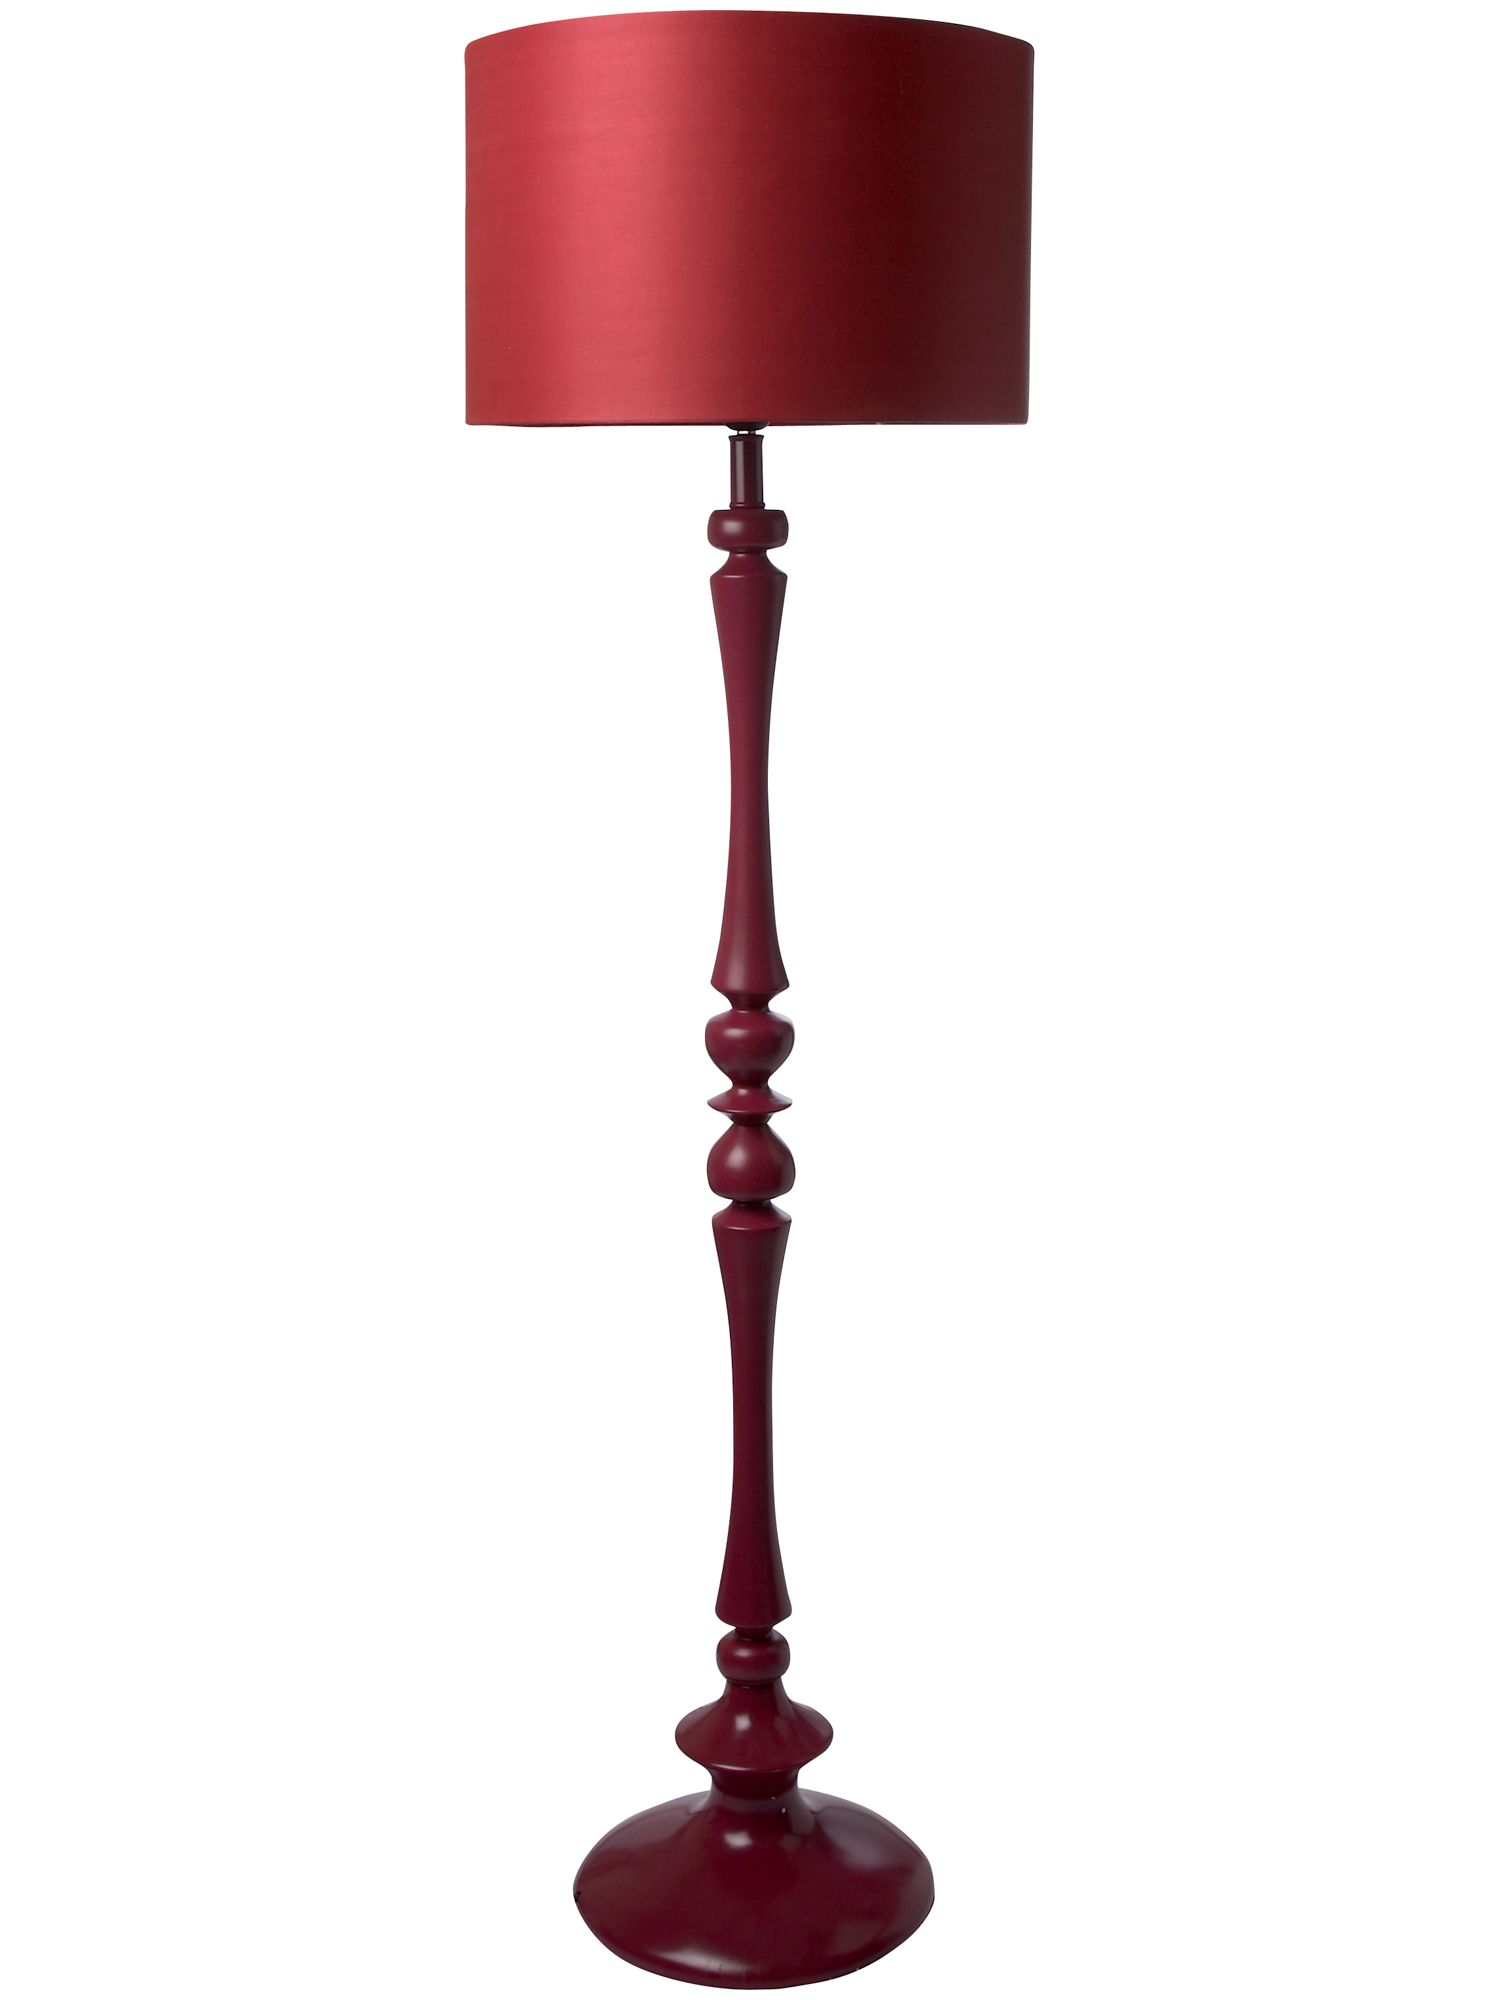 Pied a terre sophie pink floor lamp review compare for Buy floor lamp online